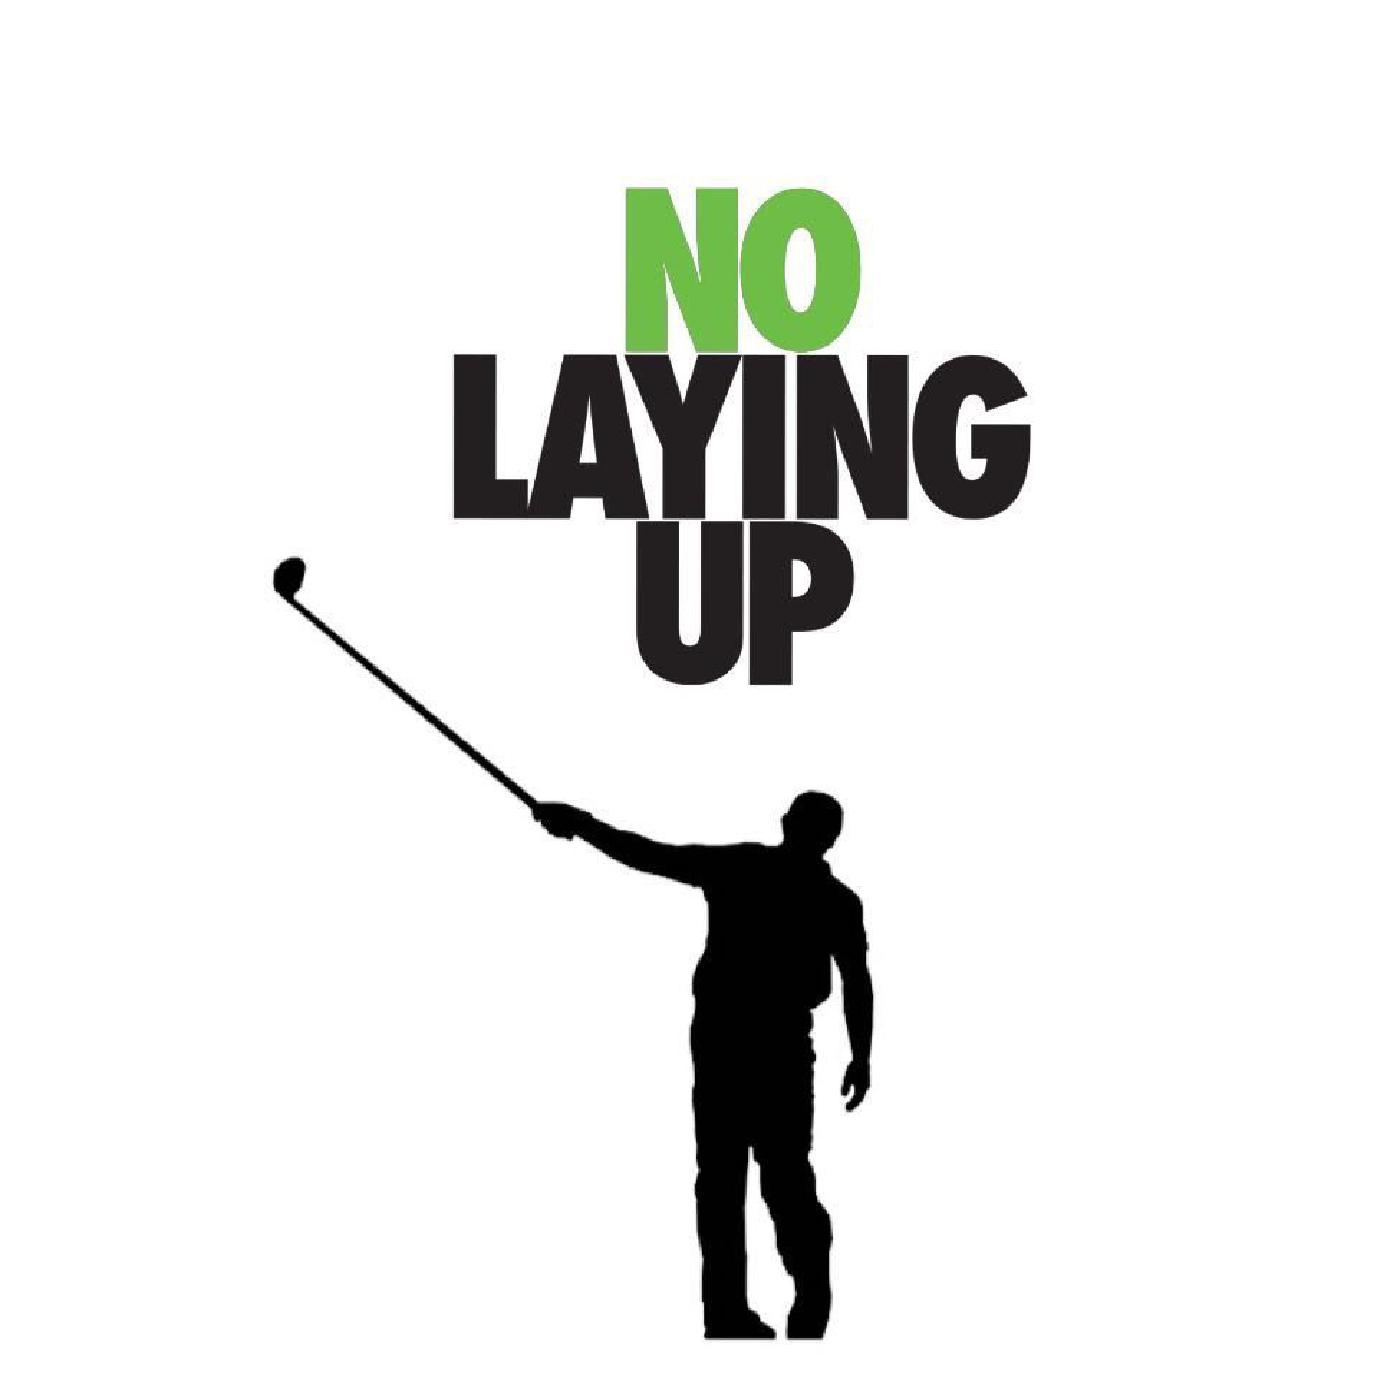 NLU Podcast, Episode 371: Every hole at Augusta National with Matty Kelly (Marc Leishman's caddie)